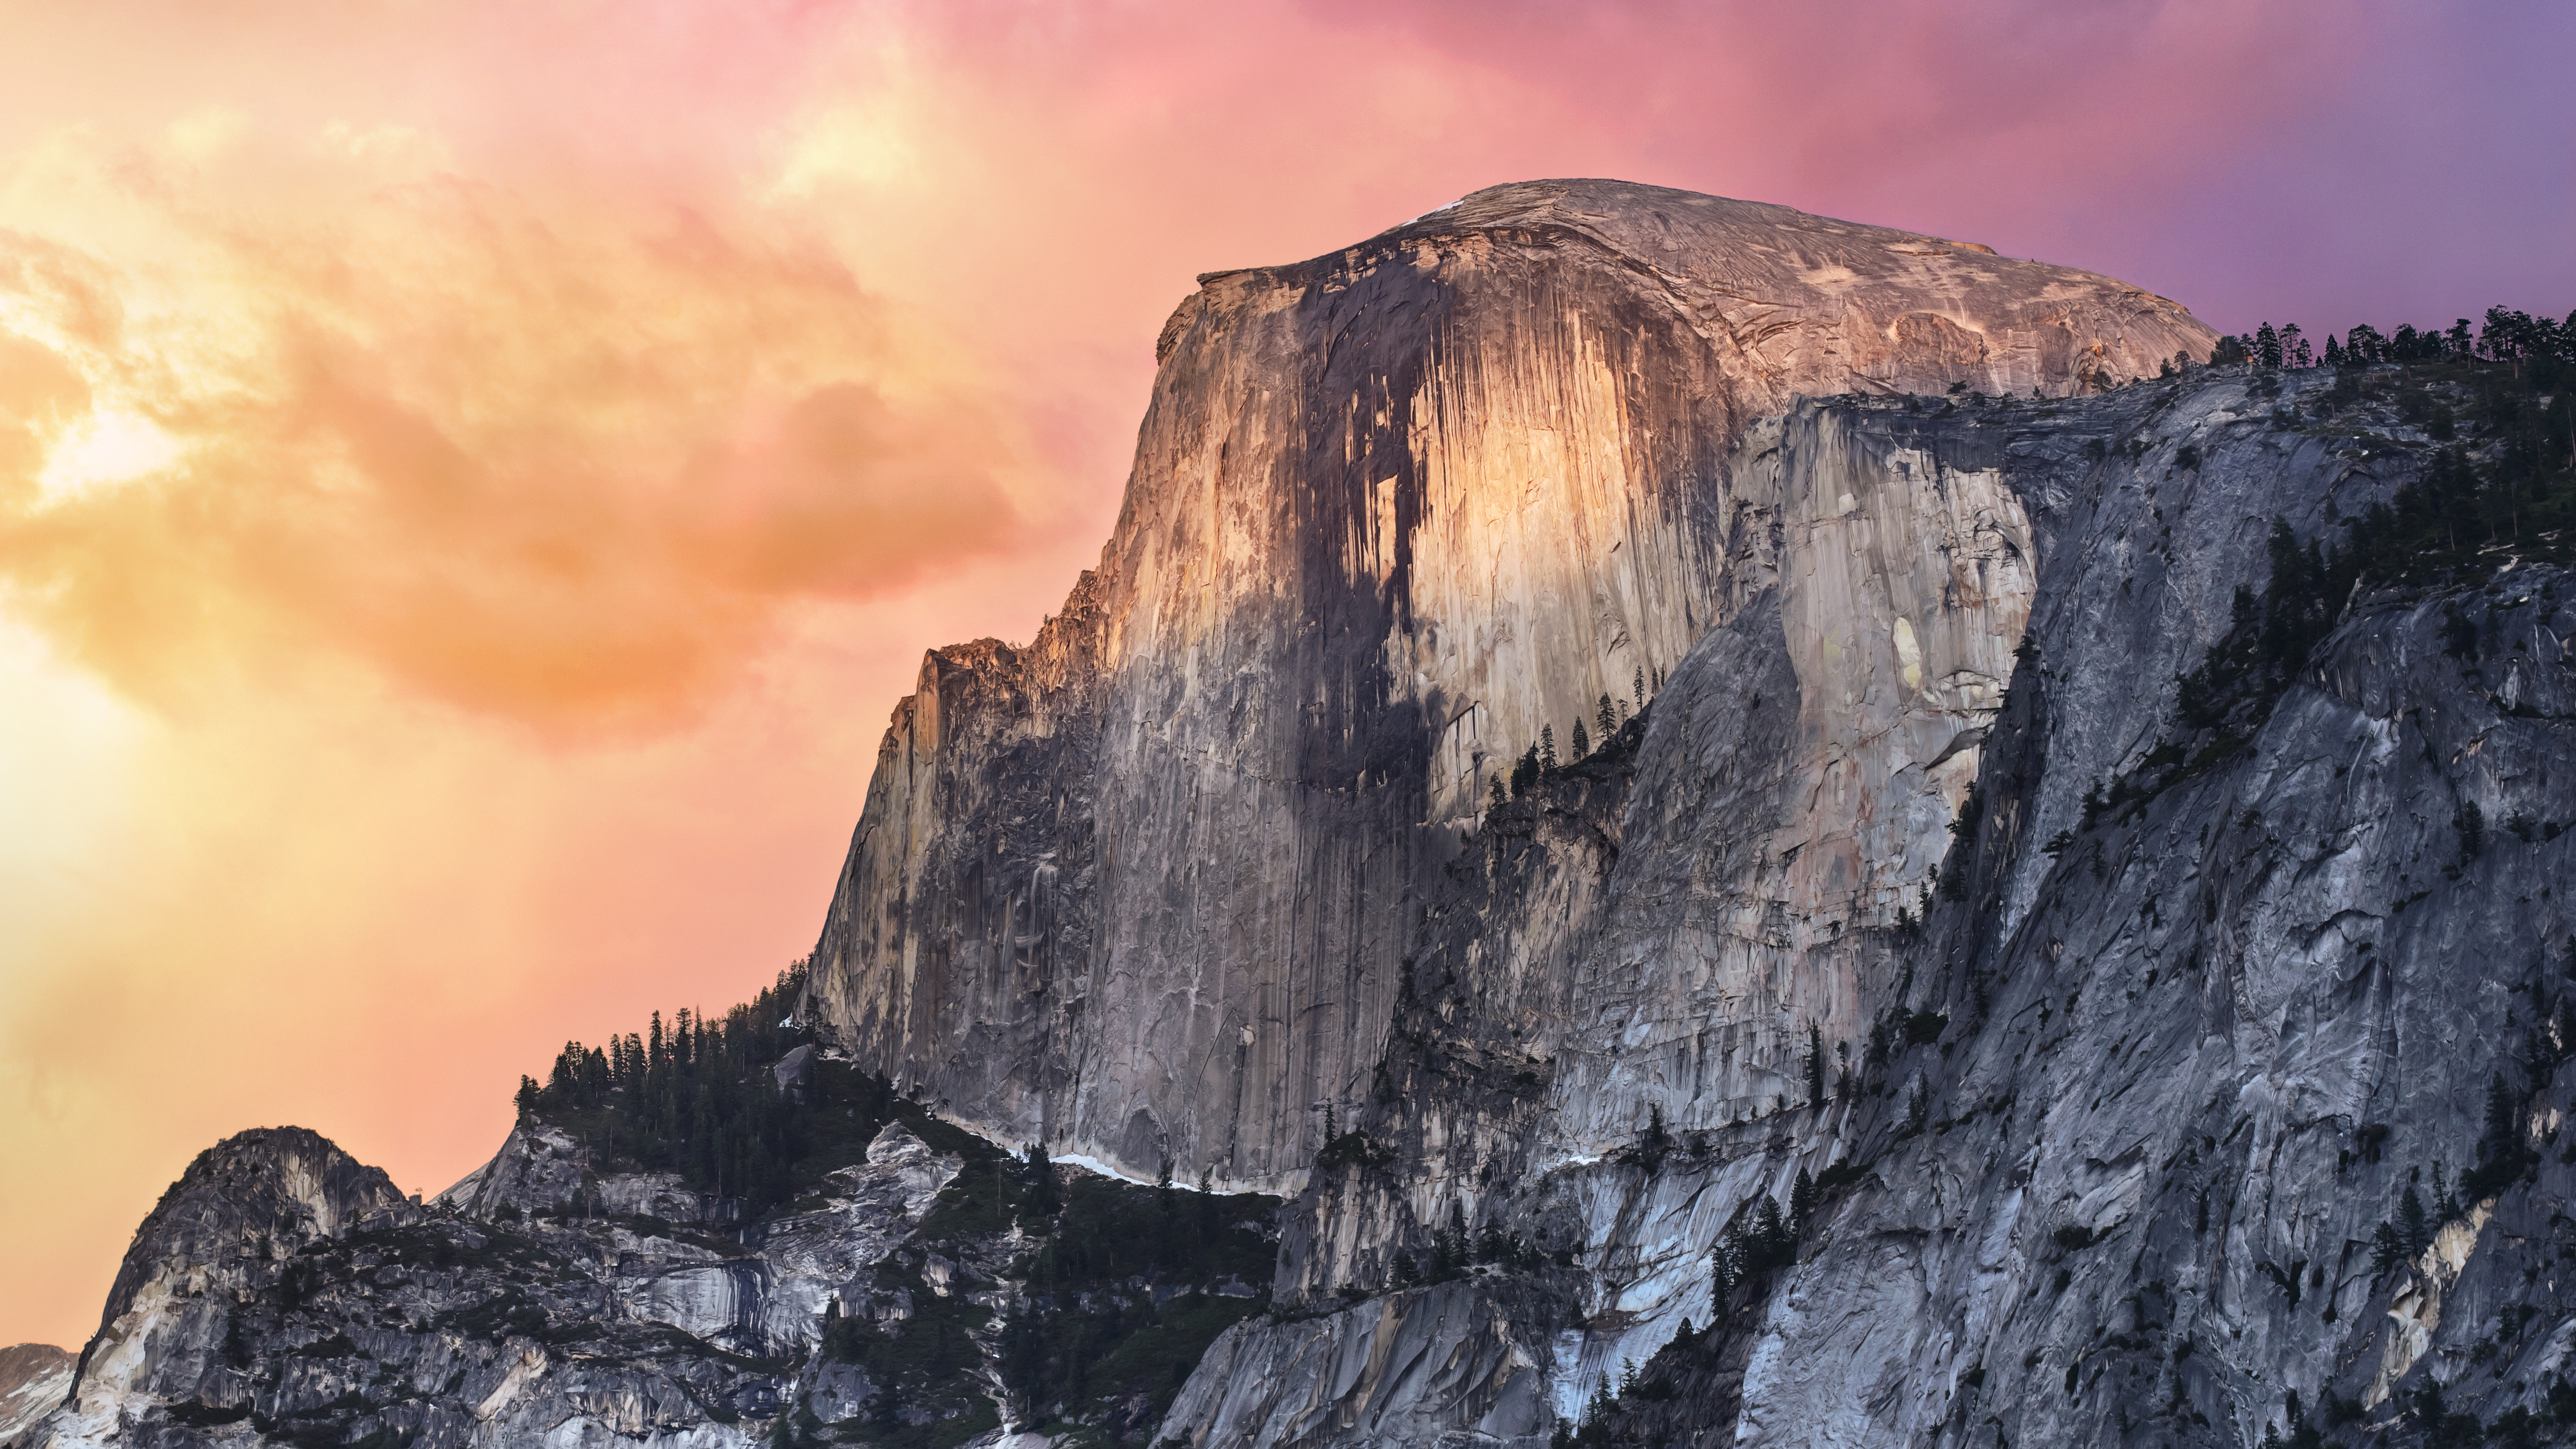 Download the iOS 8 and OS X Yosemite wallpapers 5418x3048